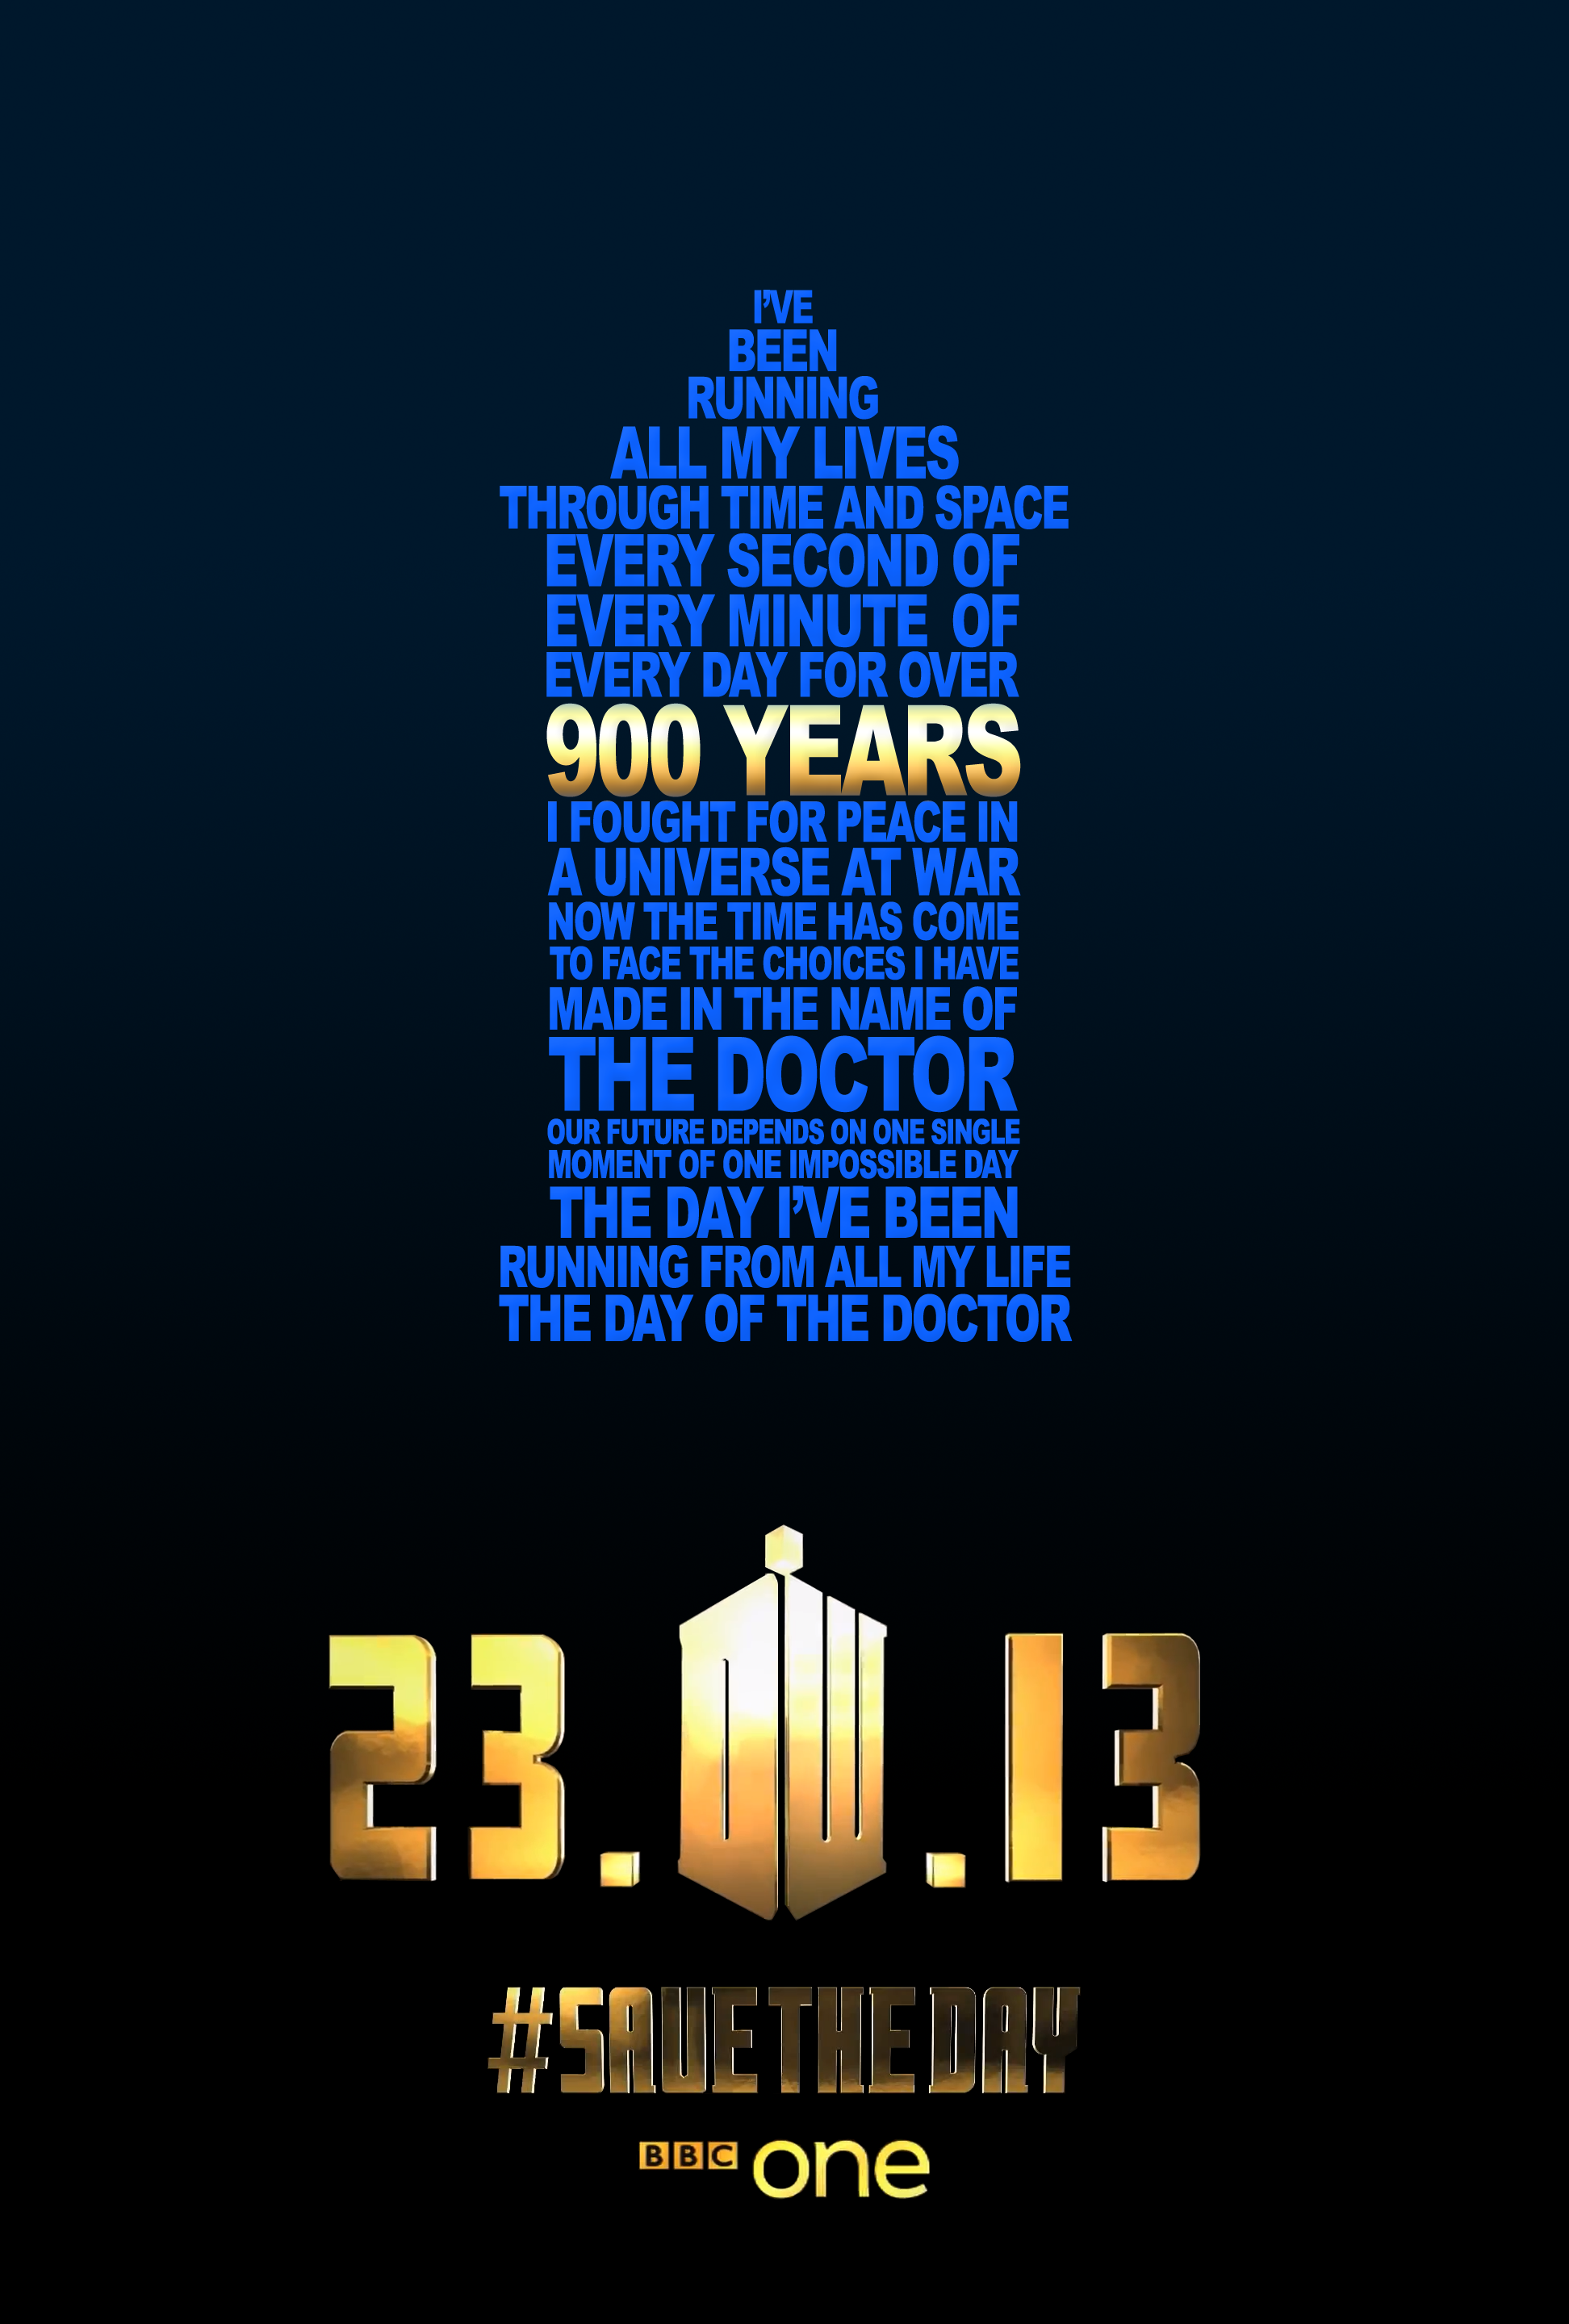 the day of the doctor typography poster who